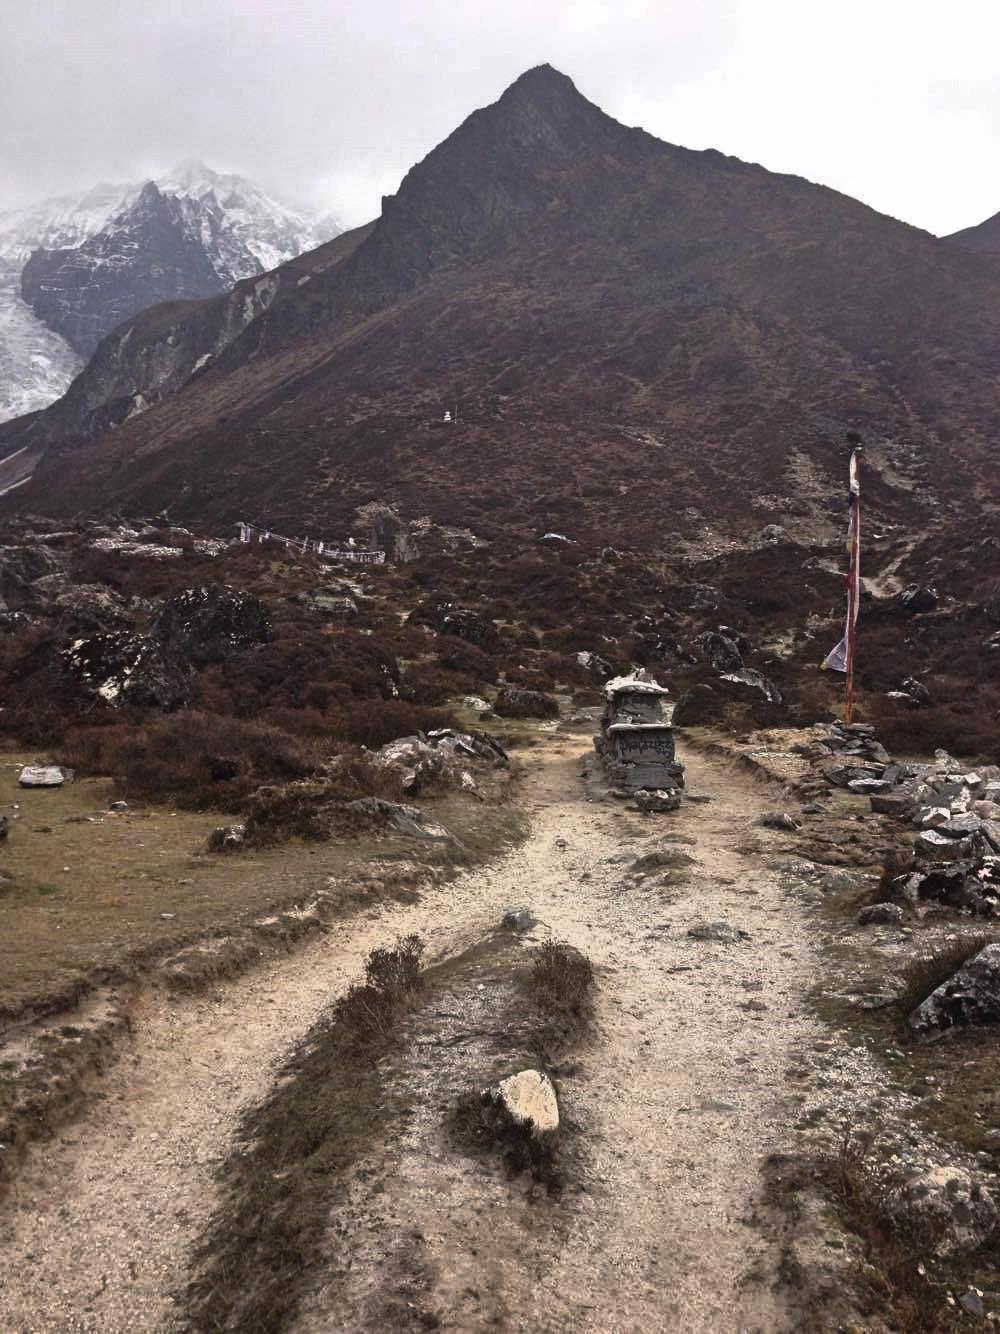 Cloudy day during Langtang Valley Trek